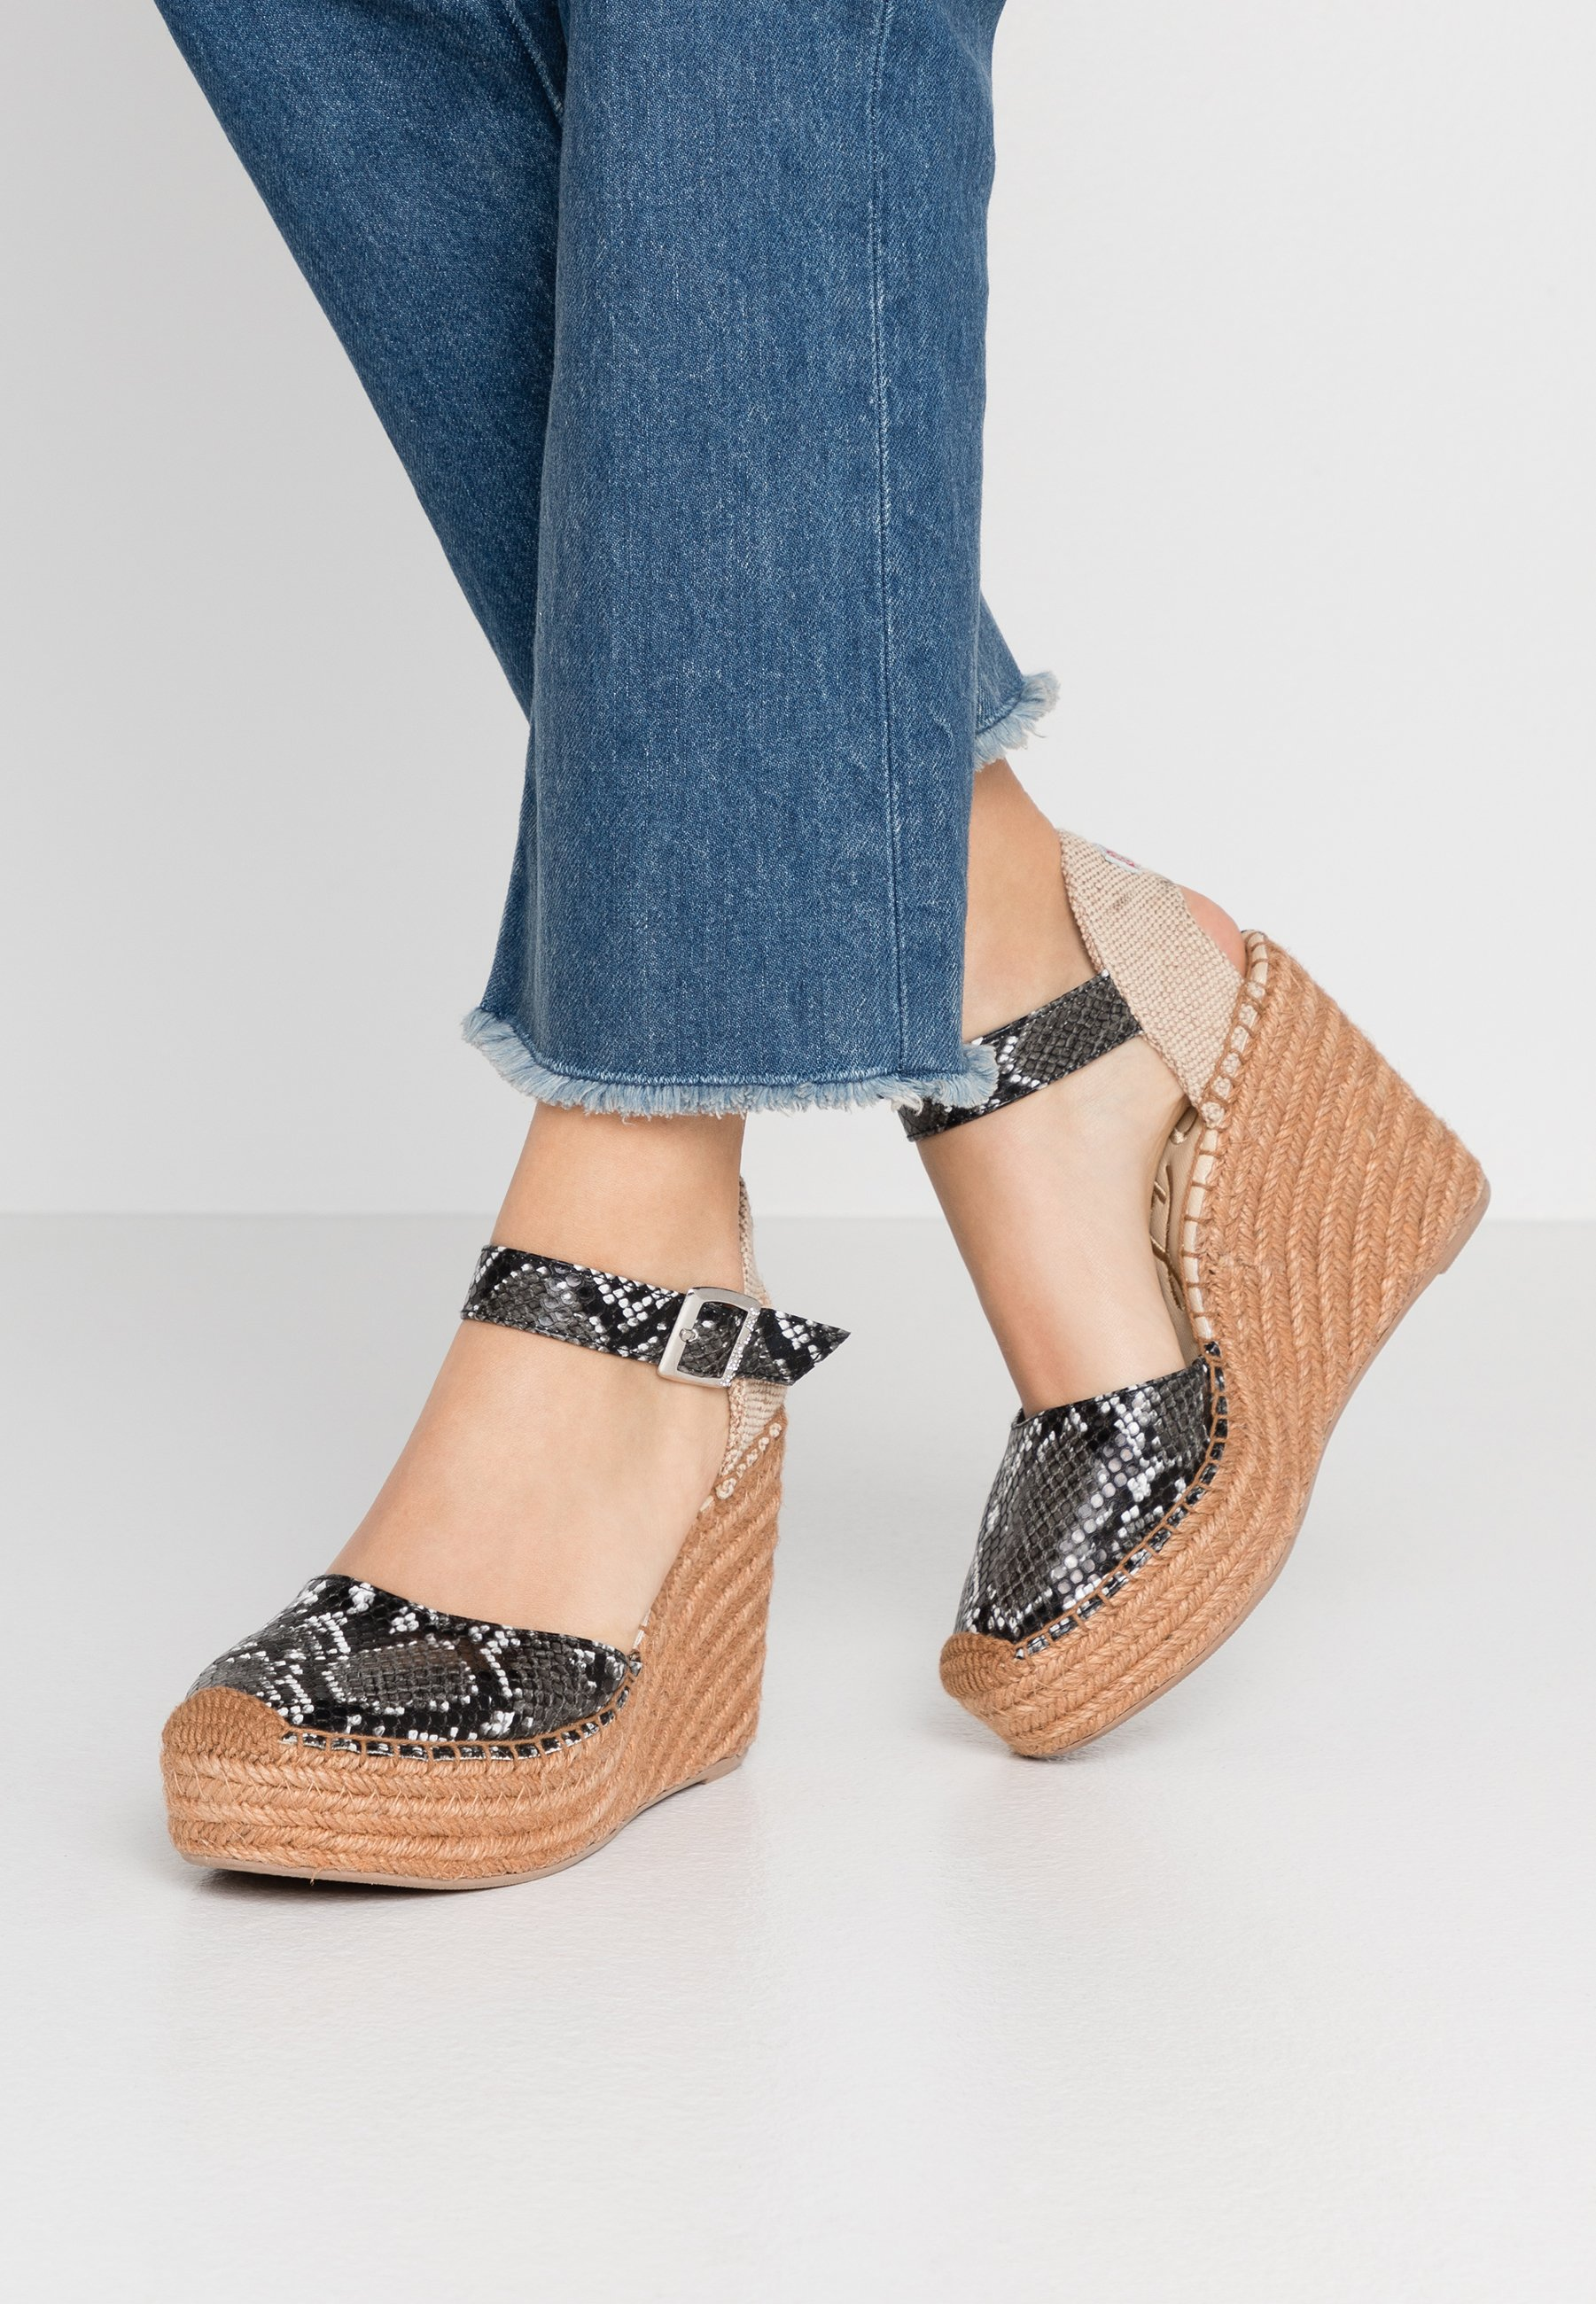 Wholesale Cheapest Replay WATTLET - High heeled sandals - grey | women's shoes 2020 LiowO